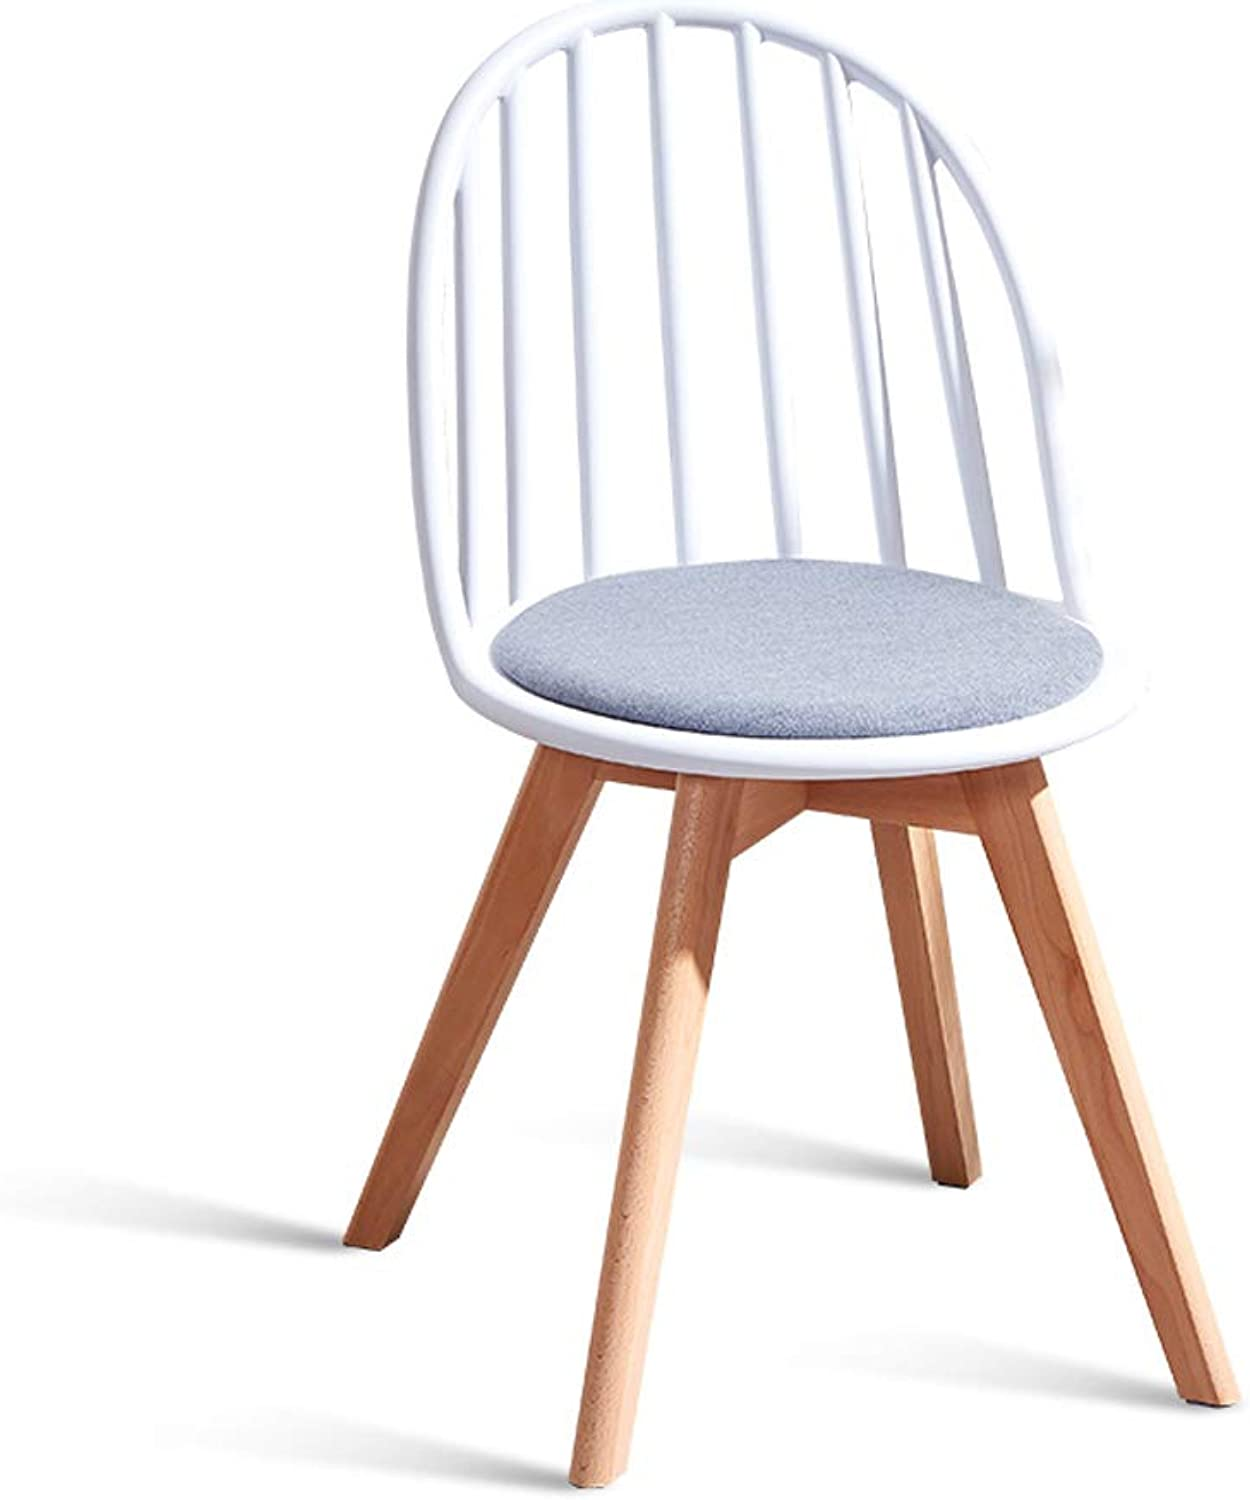 Nordic Solid Wood Dining Chair Home Back Chair Restaurant Modern Minimalist Windsor Chair Lazy Leisure Chair Stool Warm White